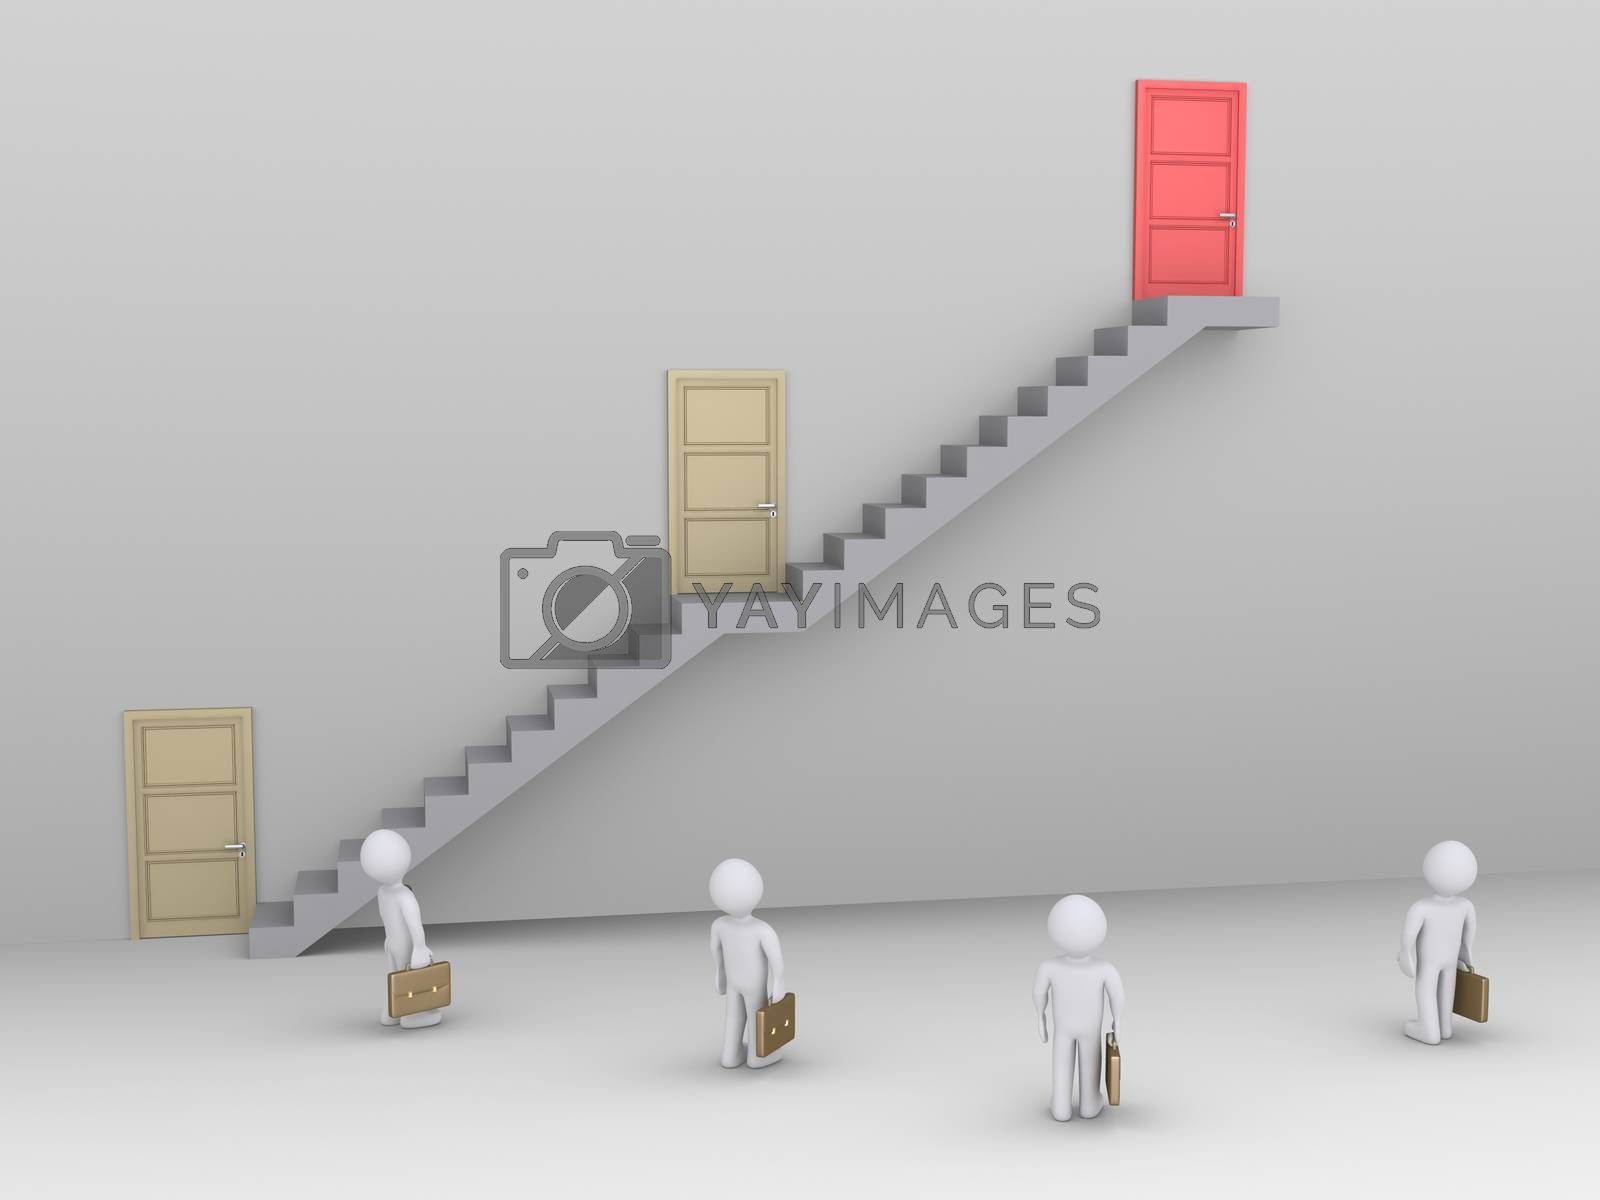 Businessmen are looking up at staircase with three doors